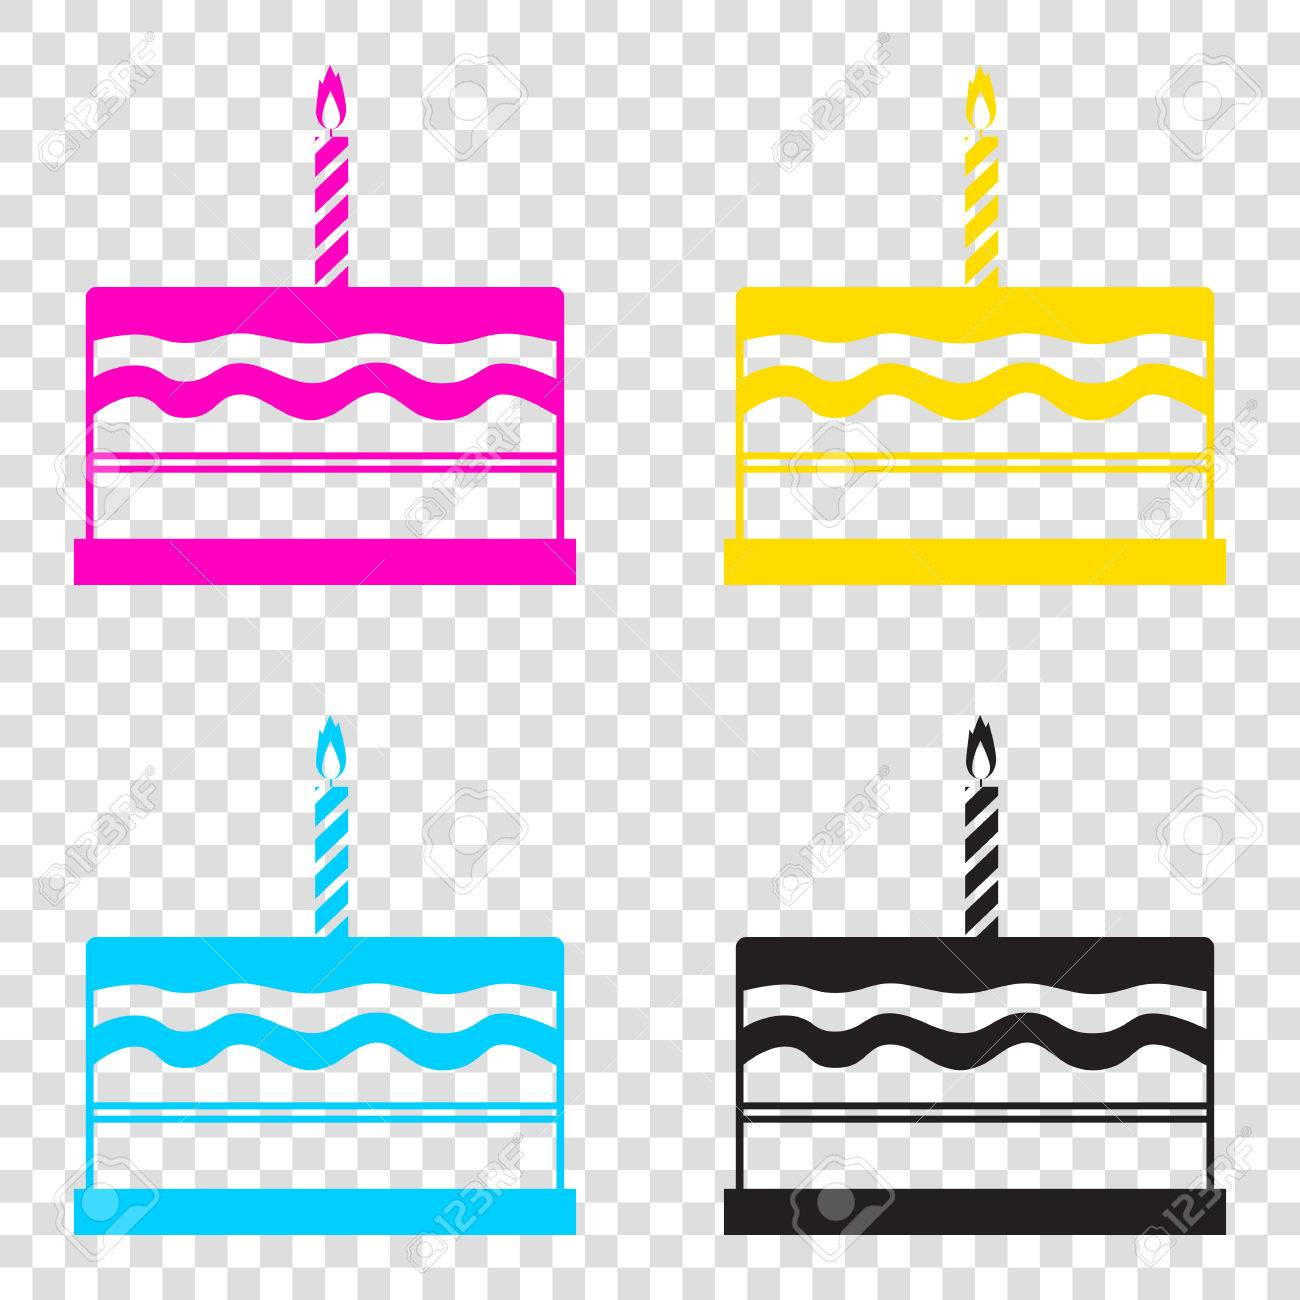 Birthday Cake Sign CMYK Icons On Transparent Background Cyan Magenta Yellow